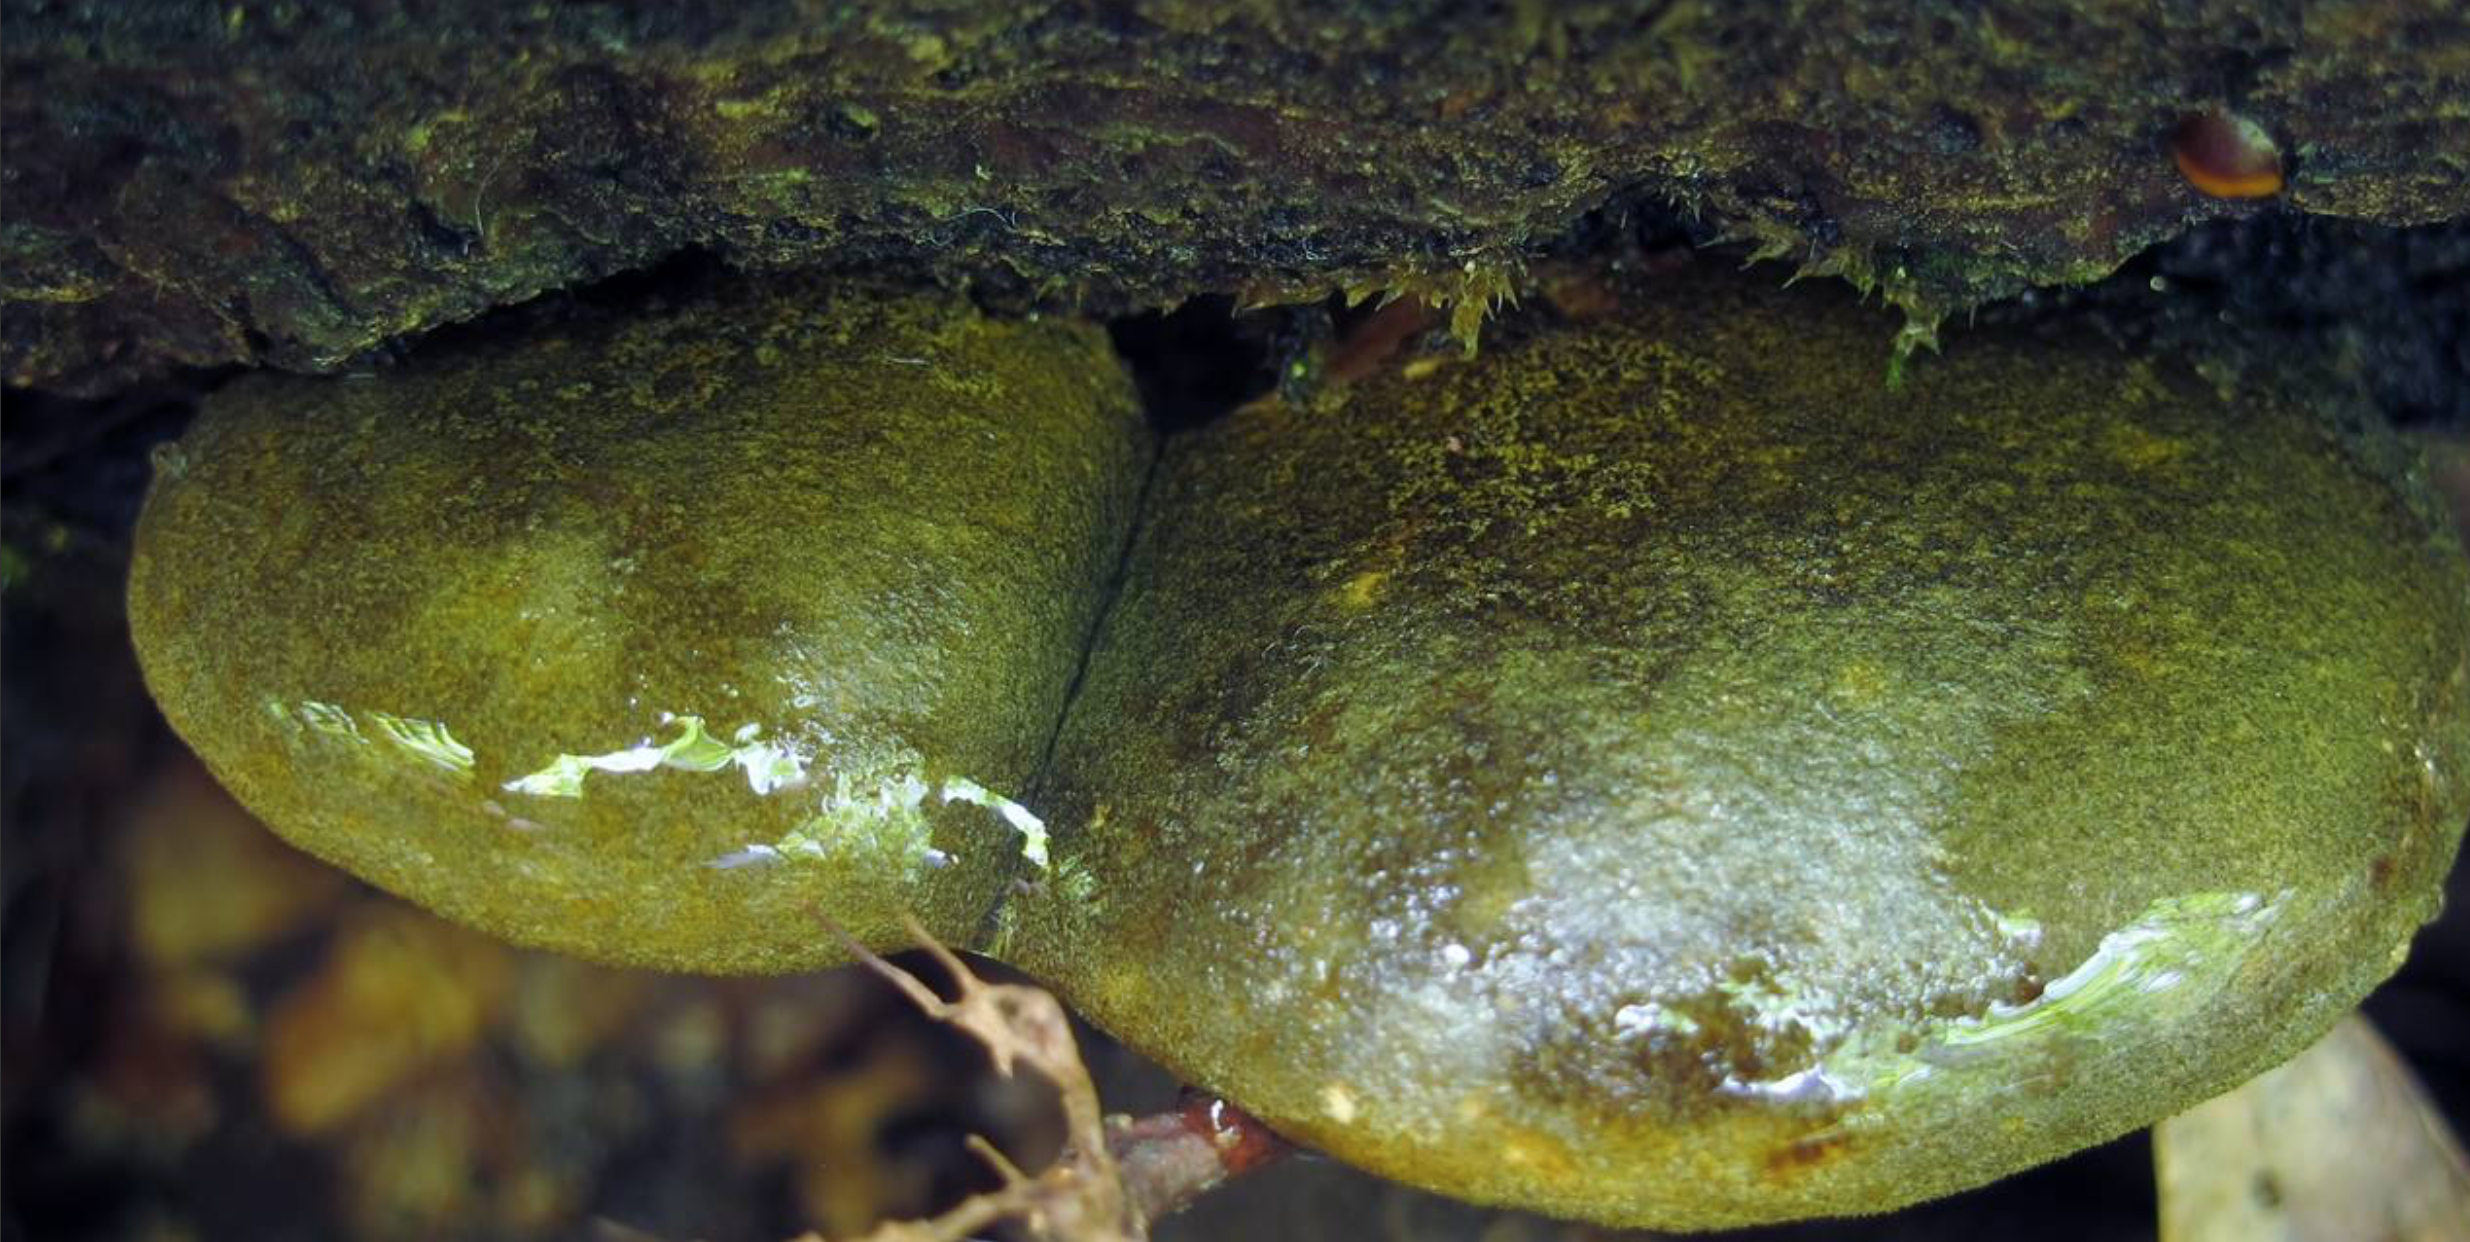 This species mucous layer is better observed when wet. Photo by Walt Sturgeon.